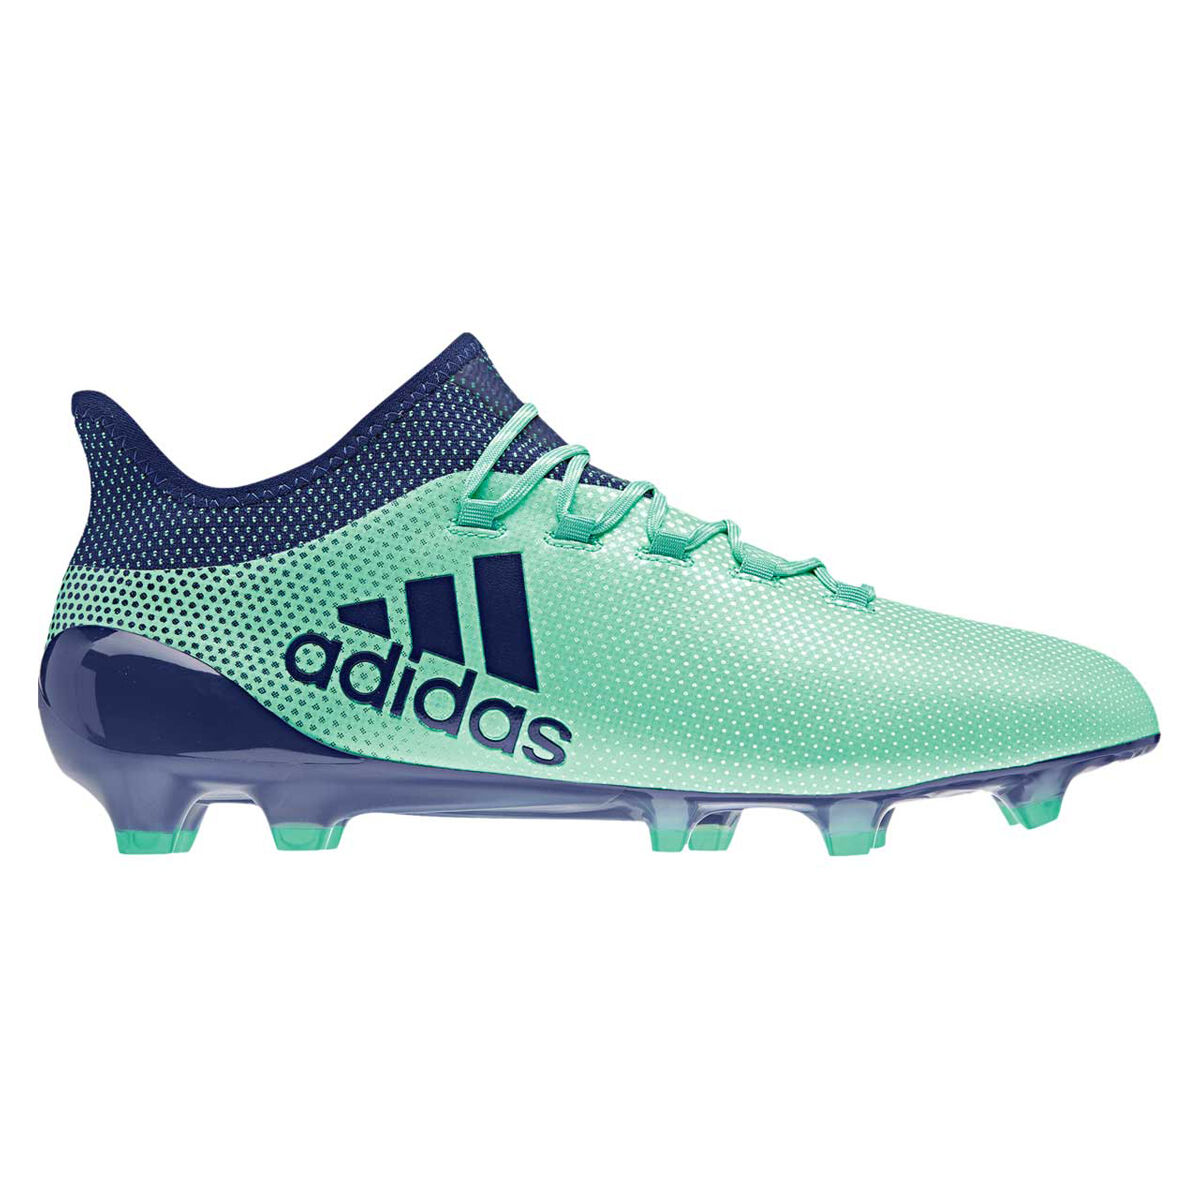 99f80e3f30d ... junior  adidas x 17.1 mens football boots green navy us 10 green navy